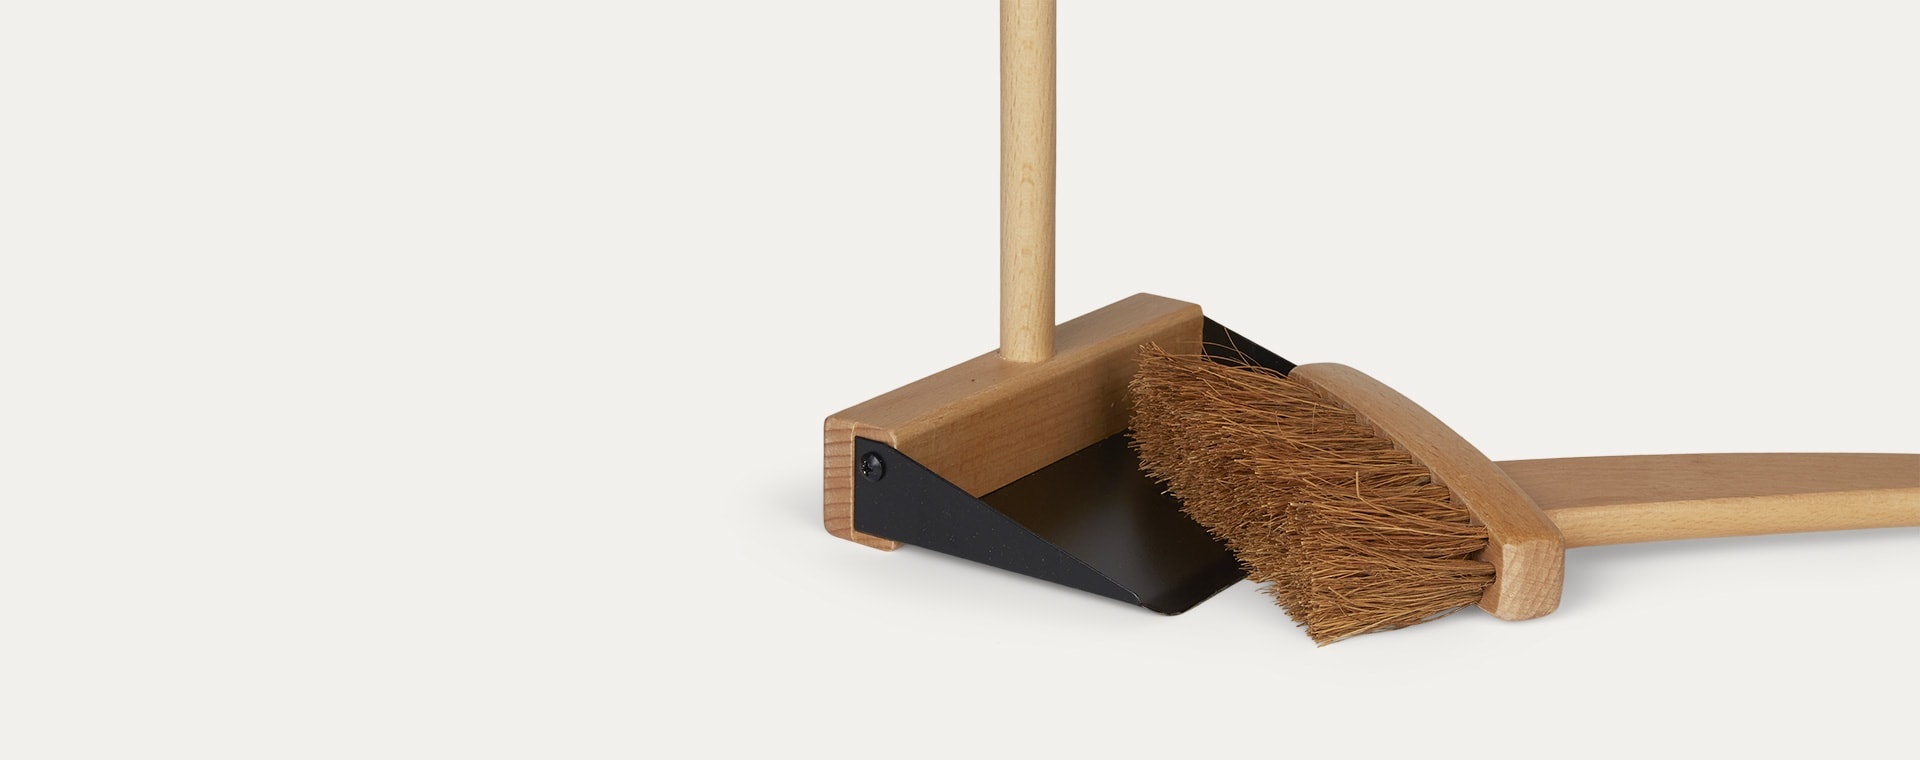 Neutral Kid's Concept Brush and Dustpan